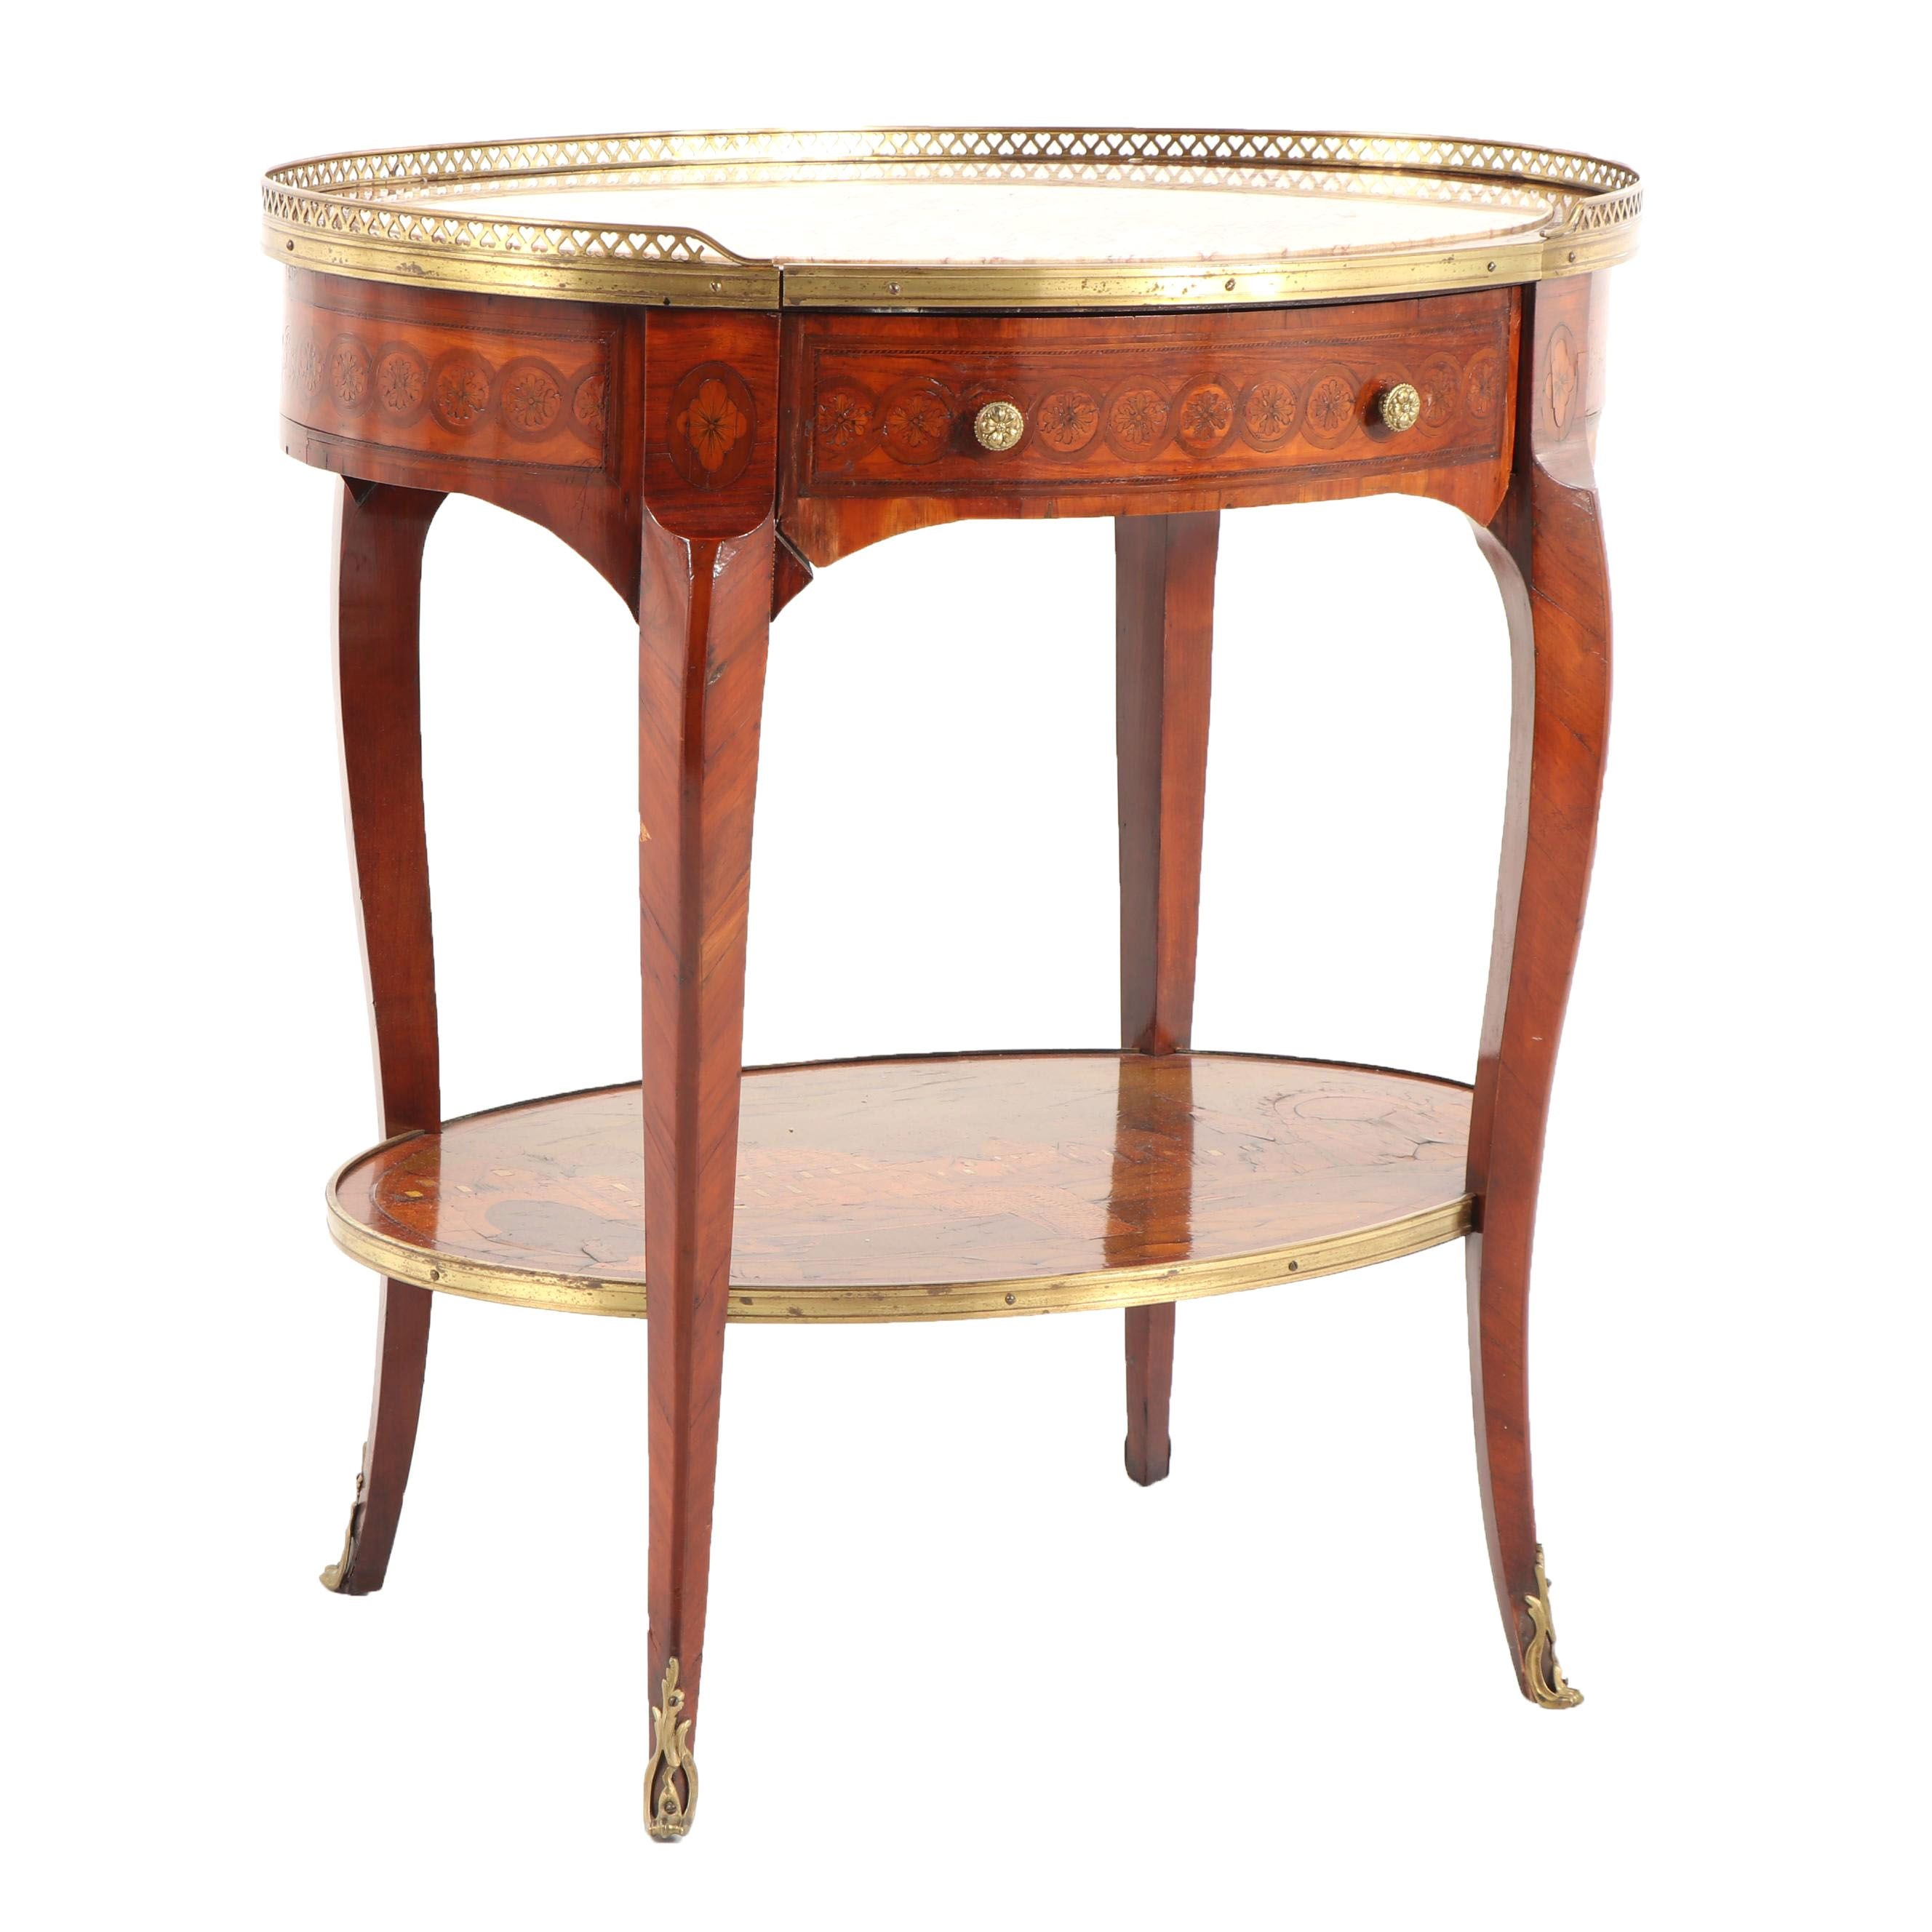 Louis XV Style Gilt Metal Mounted Marquetry Inlaid Kingwood Oval Side Table